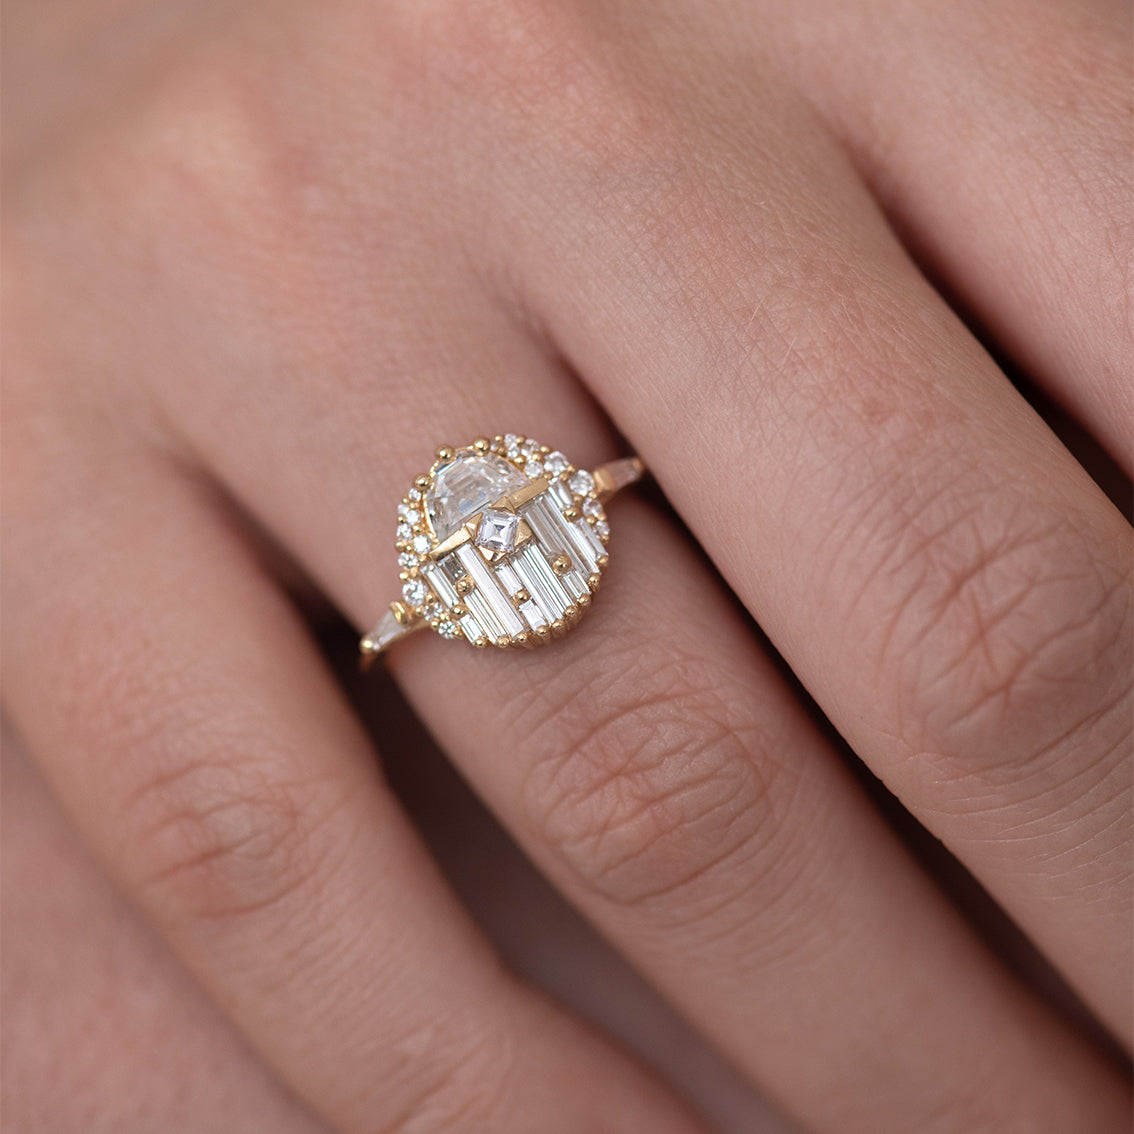 Engagement Ring with Half Moon Diamond - The Aztec Temple Ring on finger